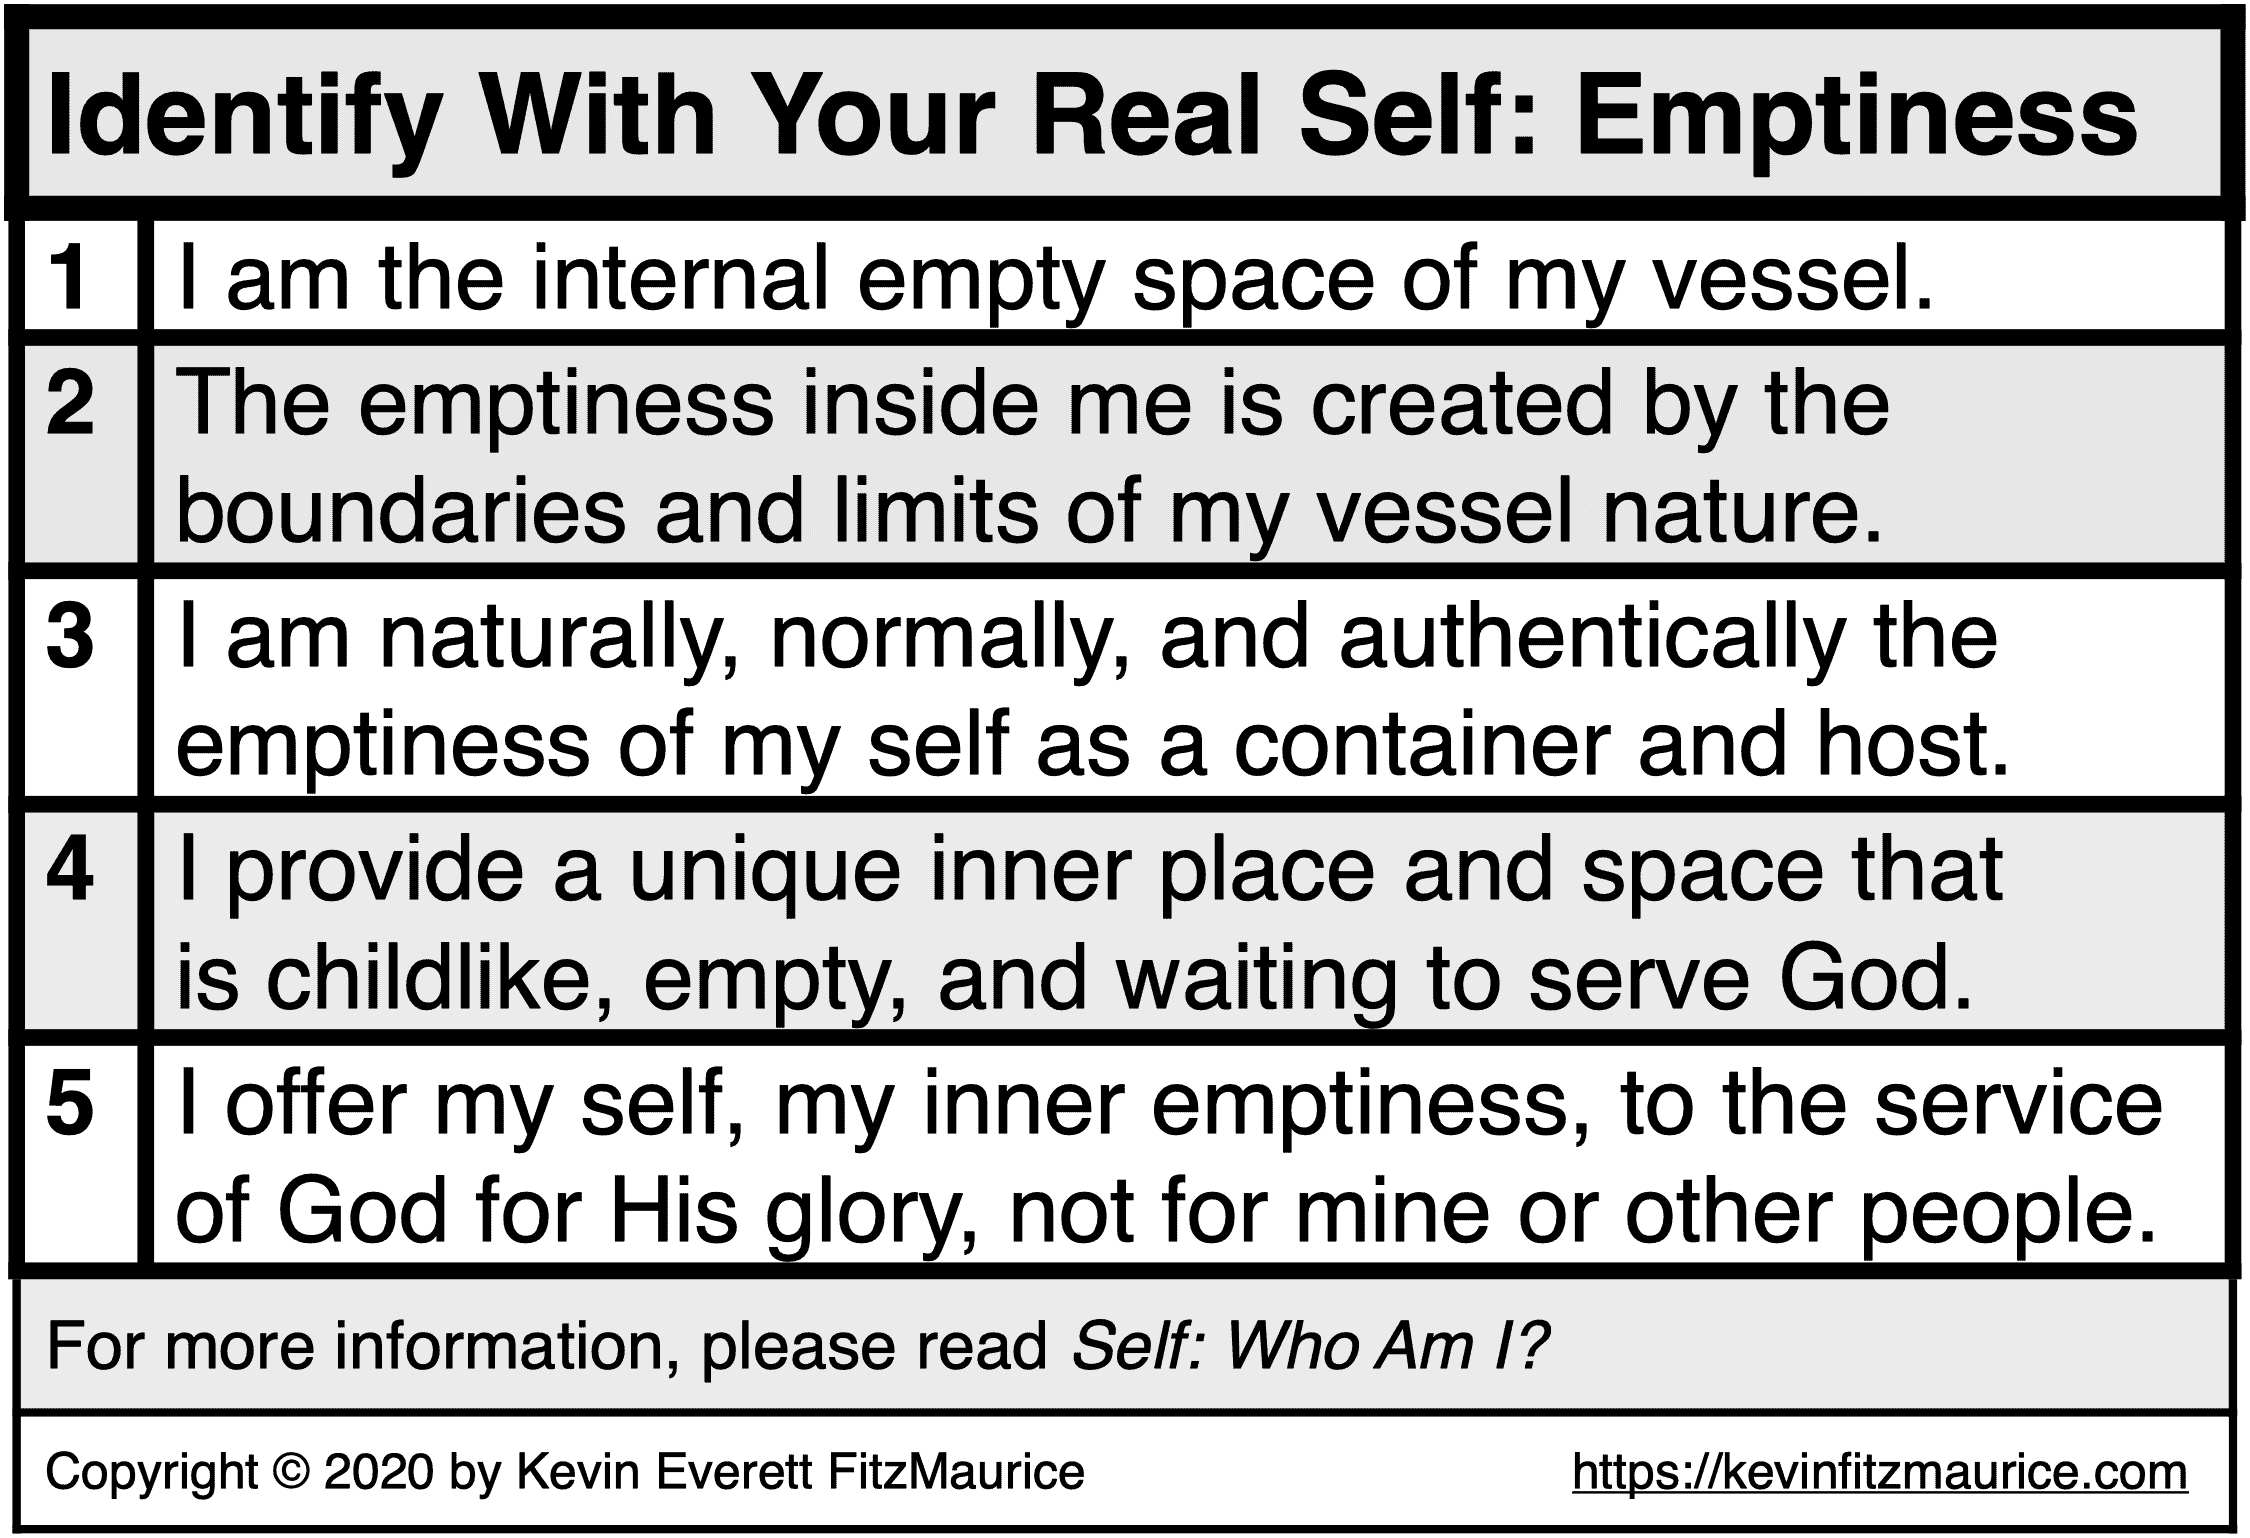 identify with your real self as emptiness.